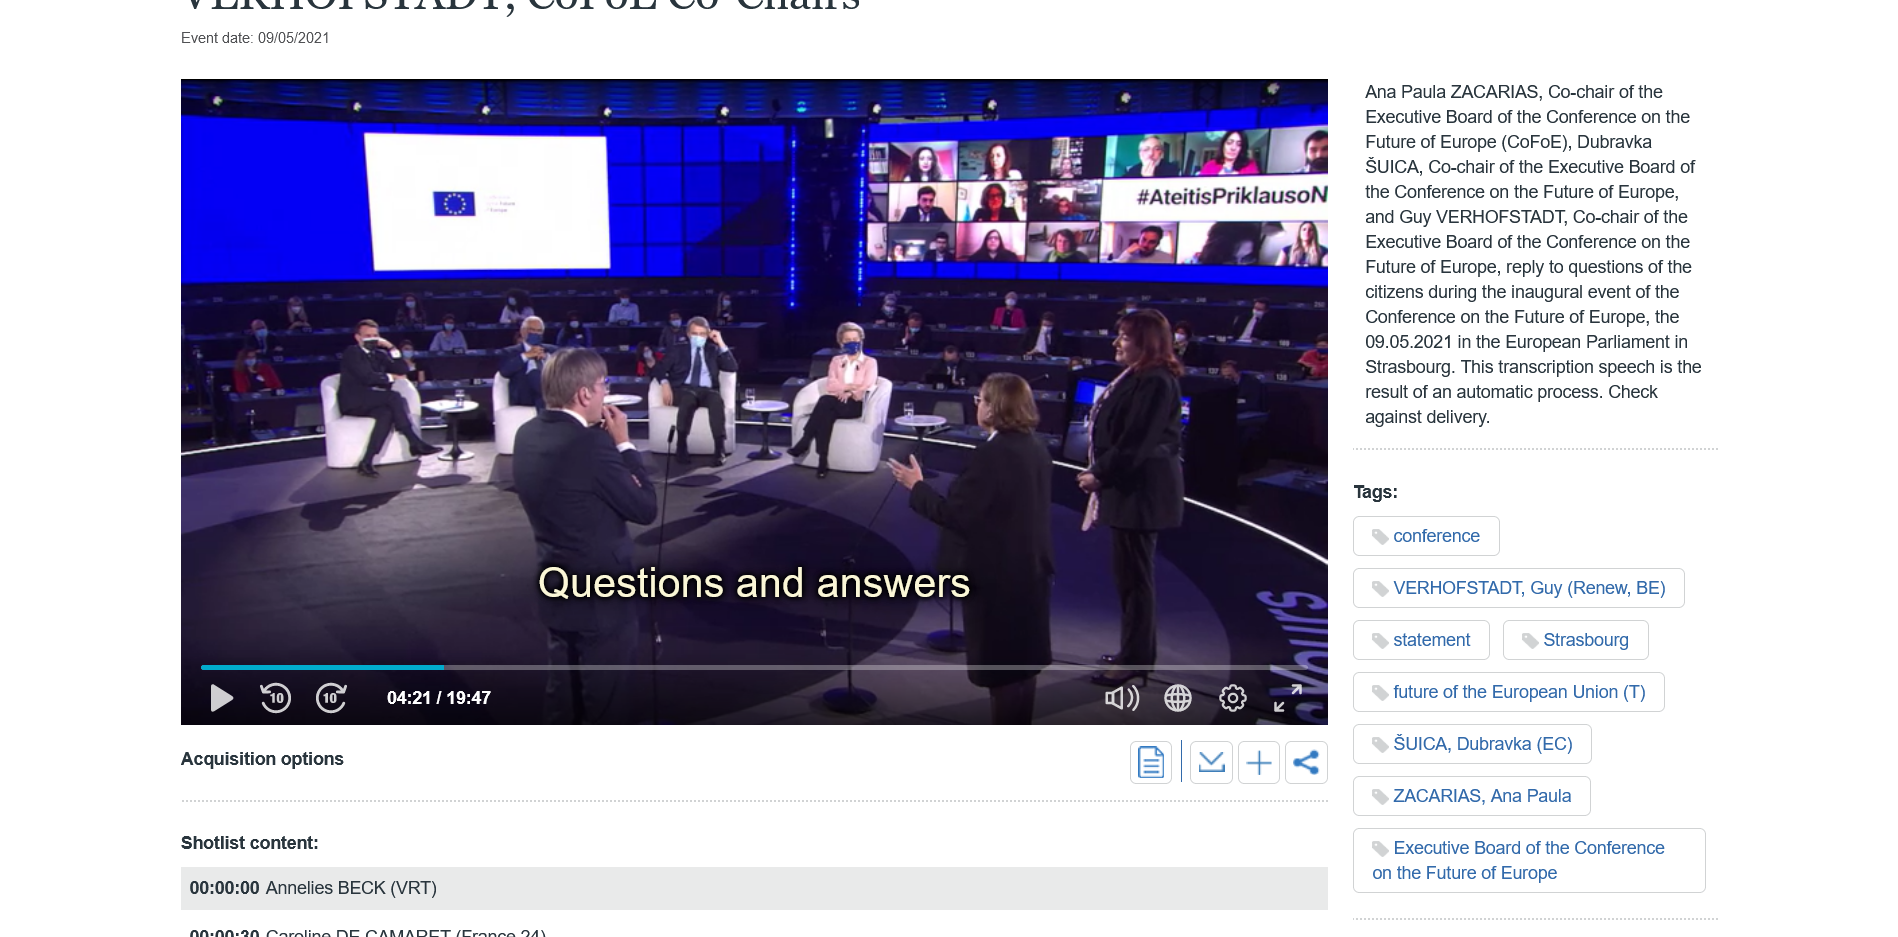 Foto: Conference on the future of Europe: Questions and answers